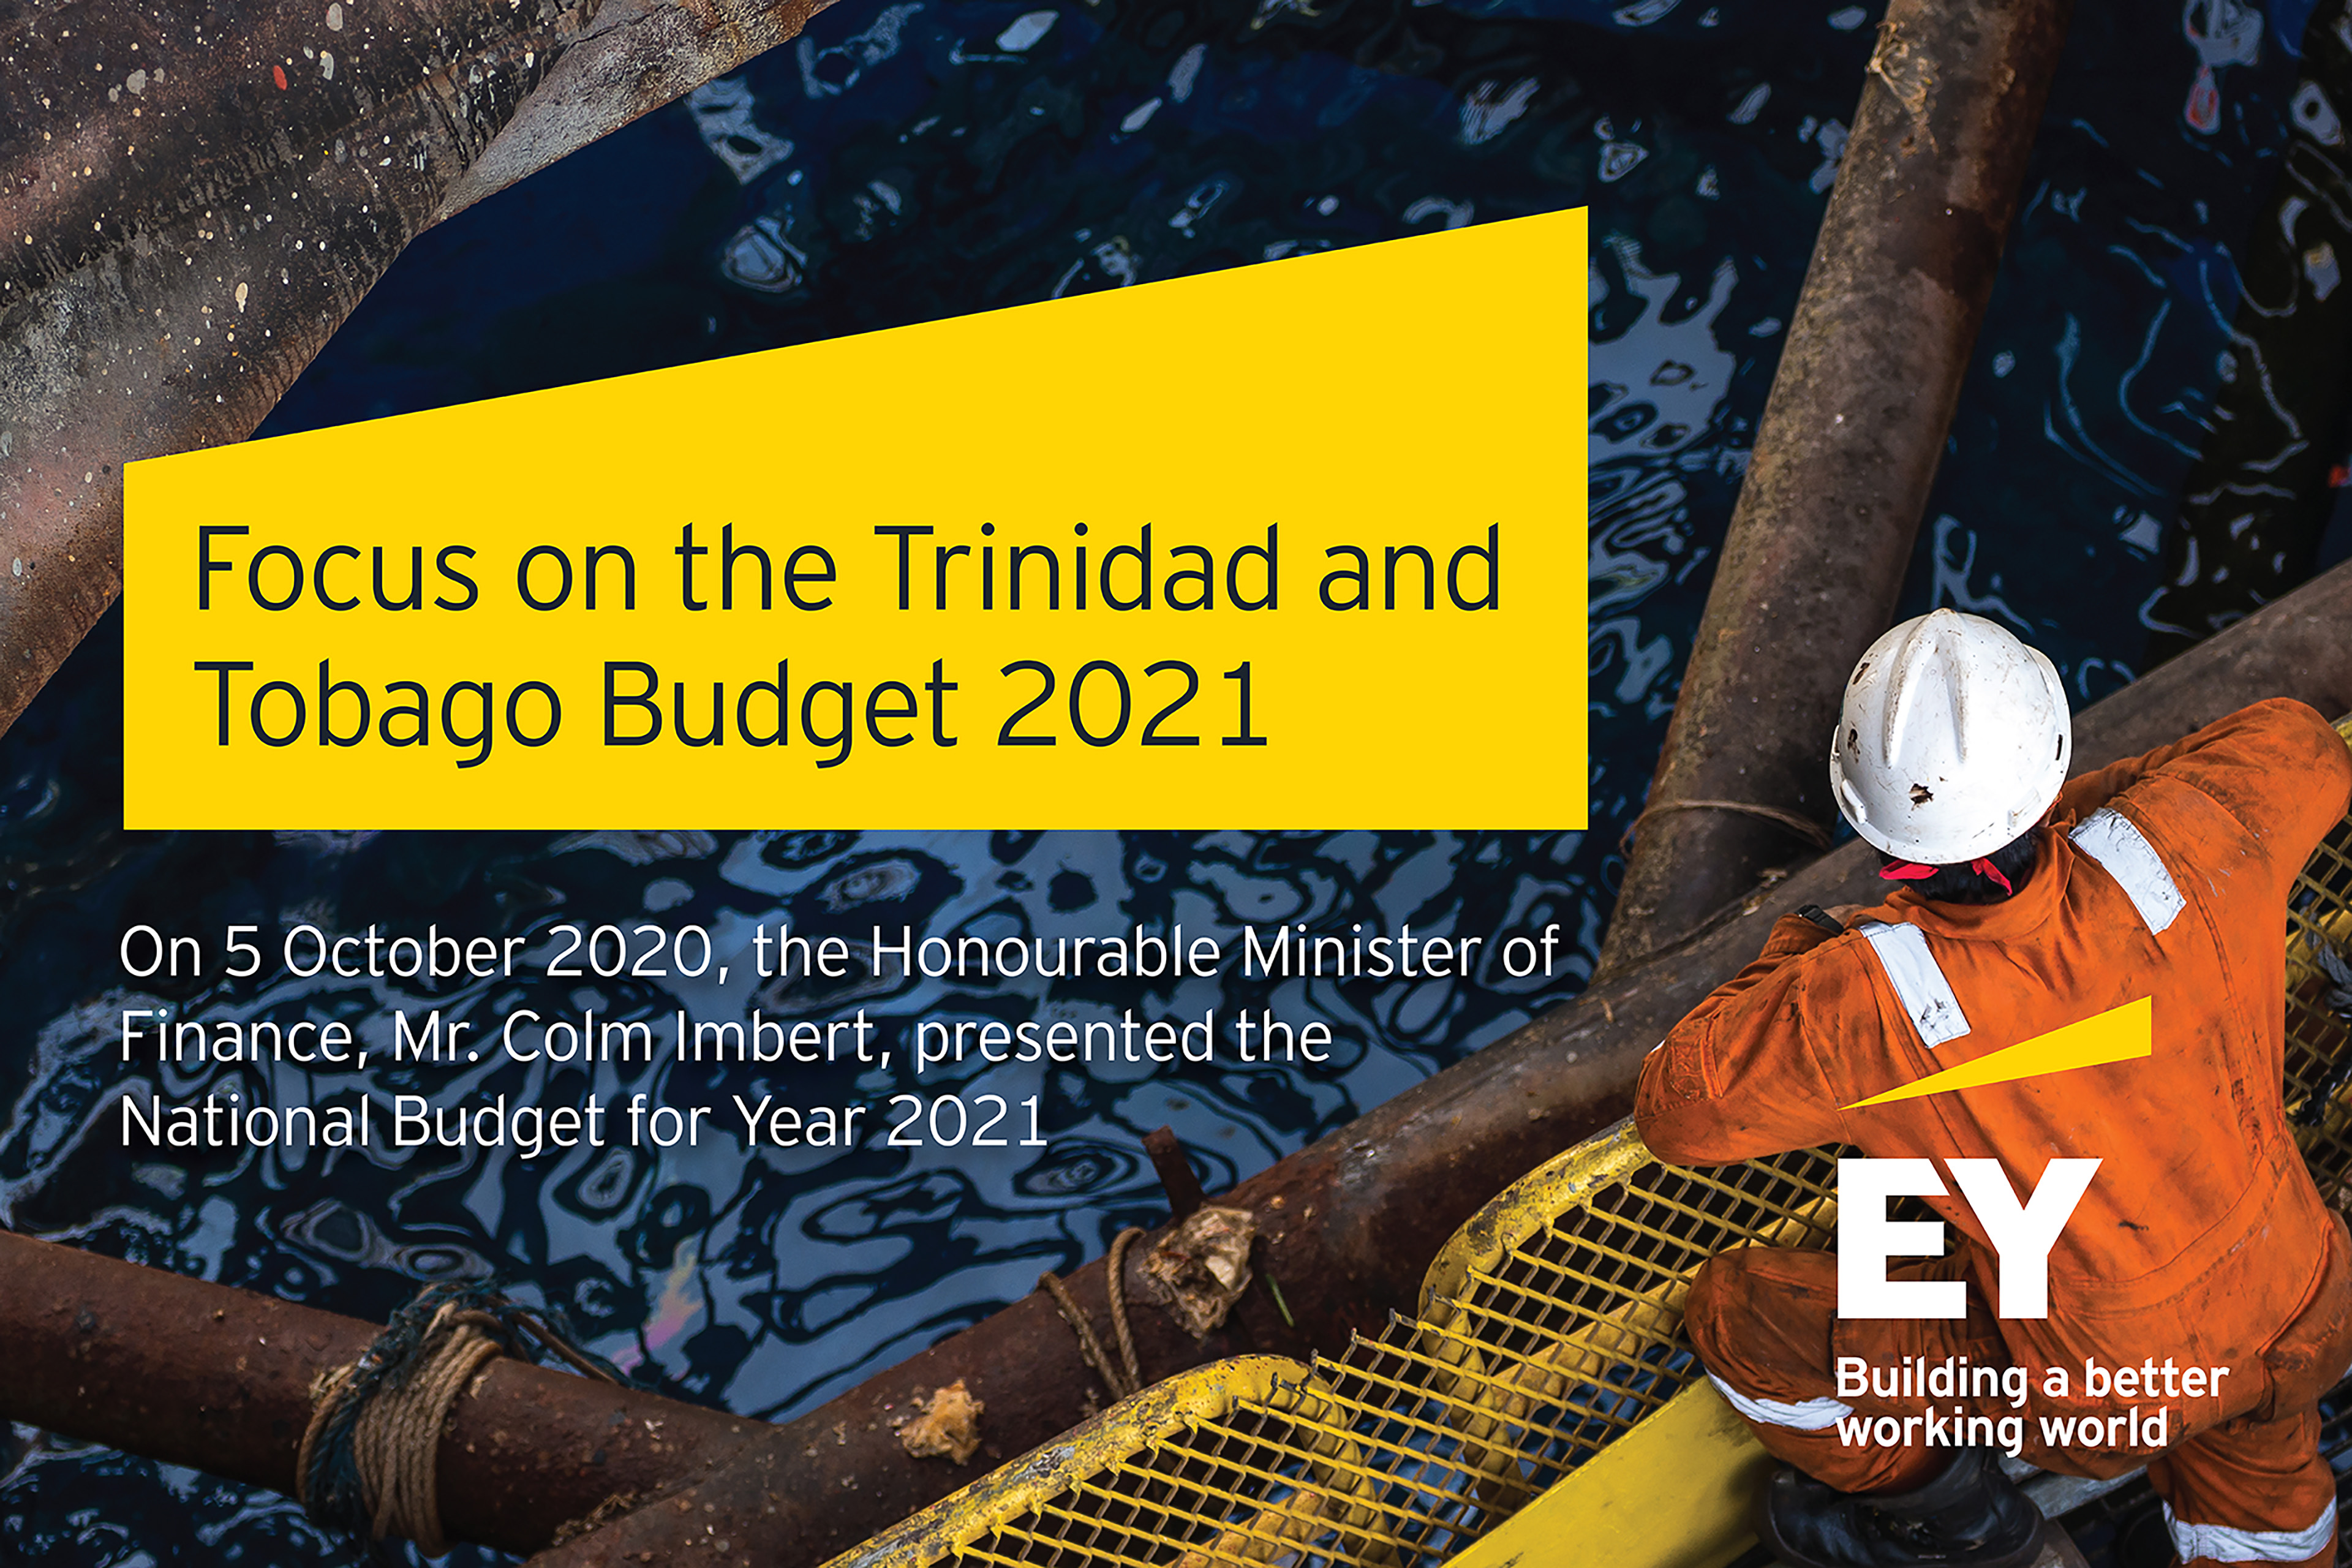 ey-tt-tax-budget-cover-page-20201005